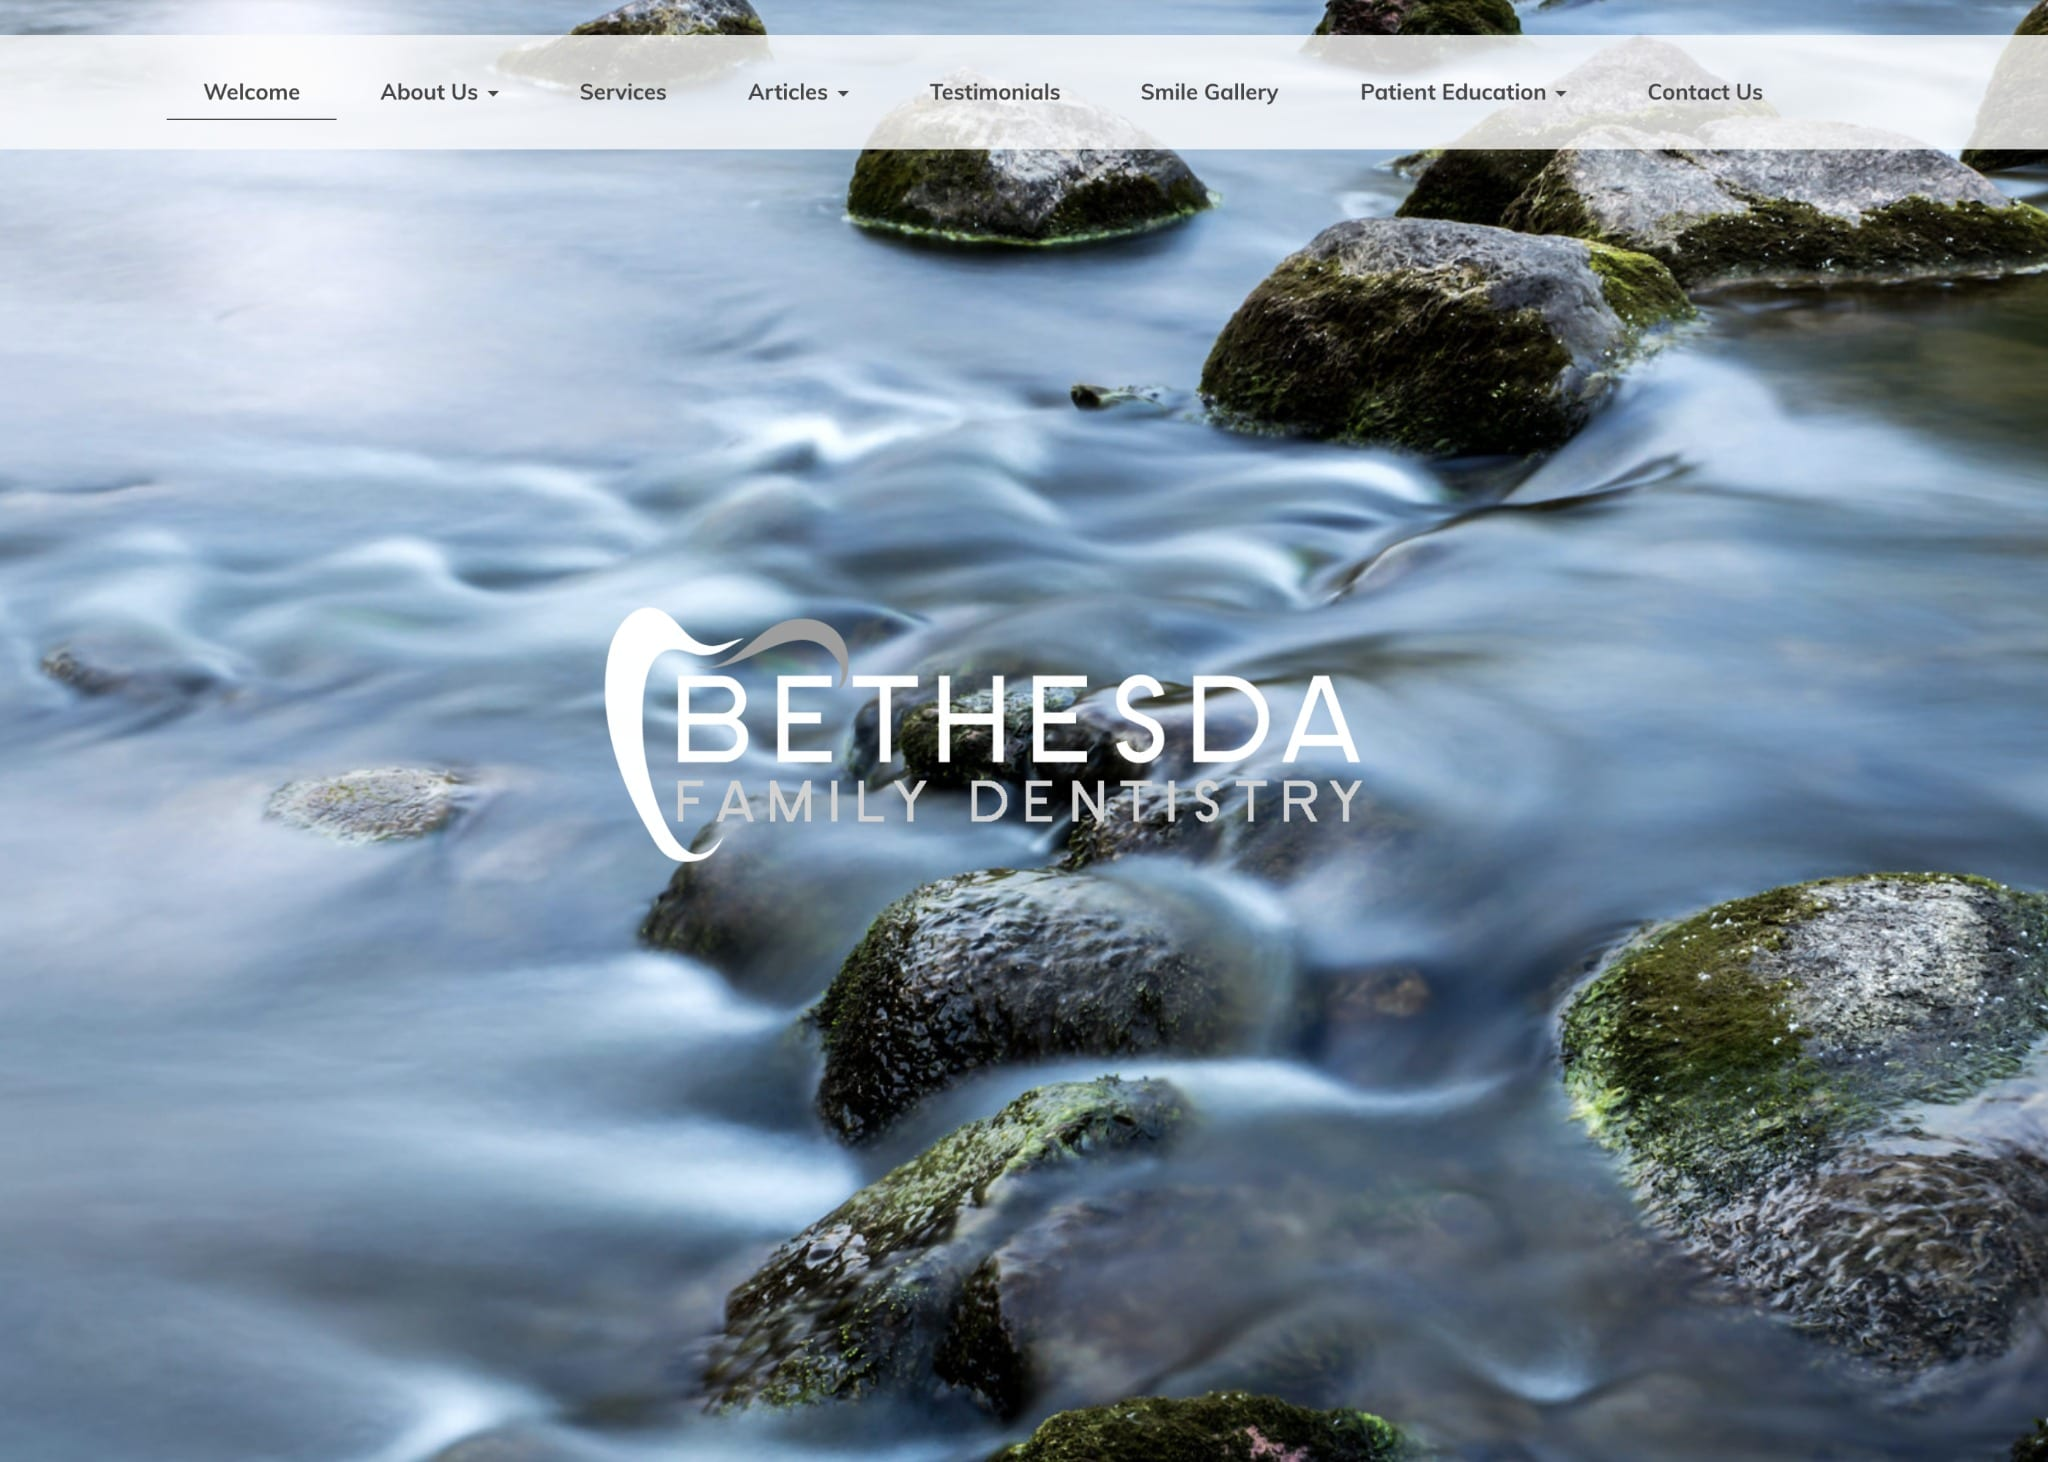 bethesta dental website